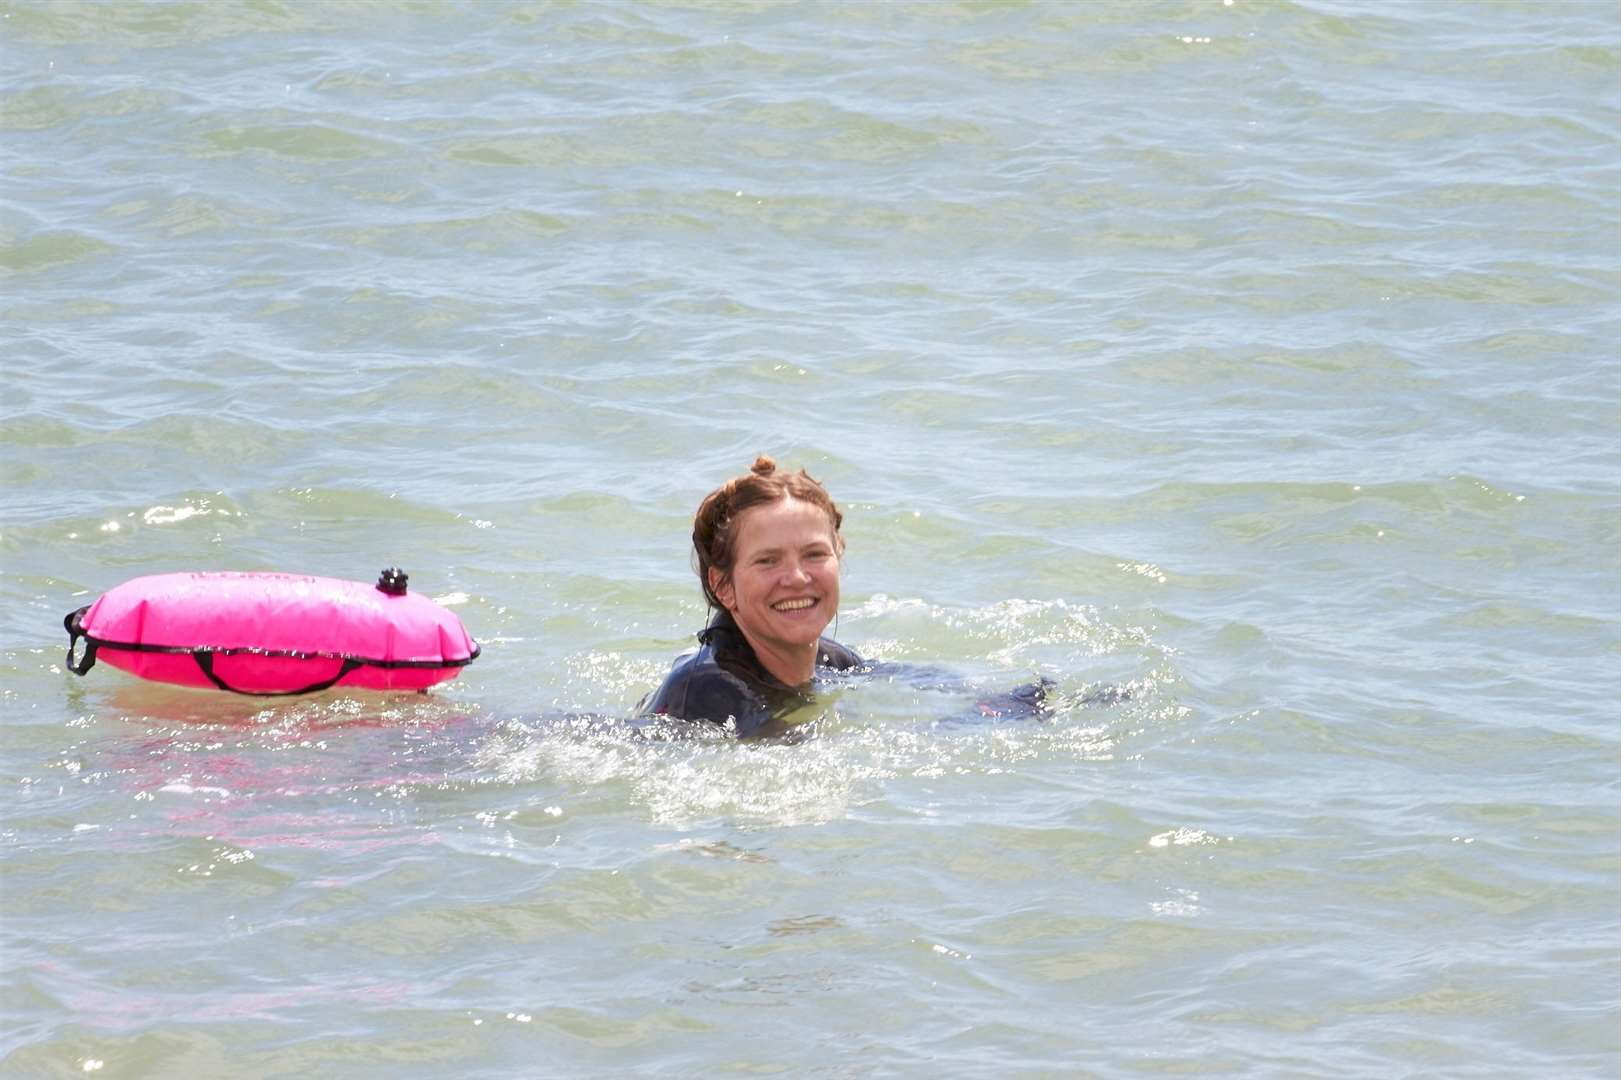 Actress Jessica Hynes swam from Hythe to Folkestone. Picture: Manuel Vason